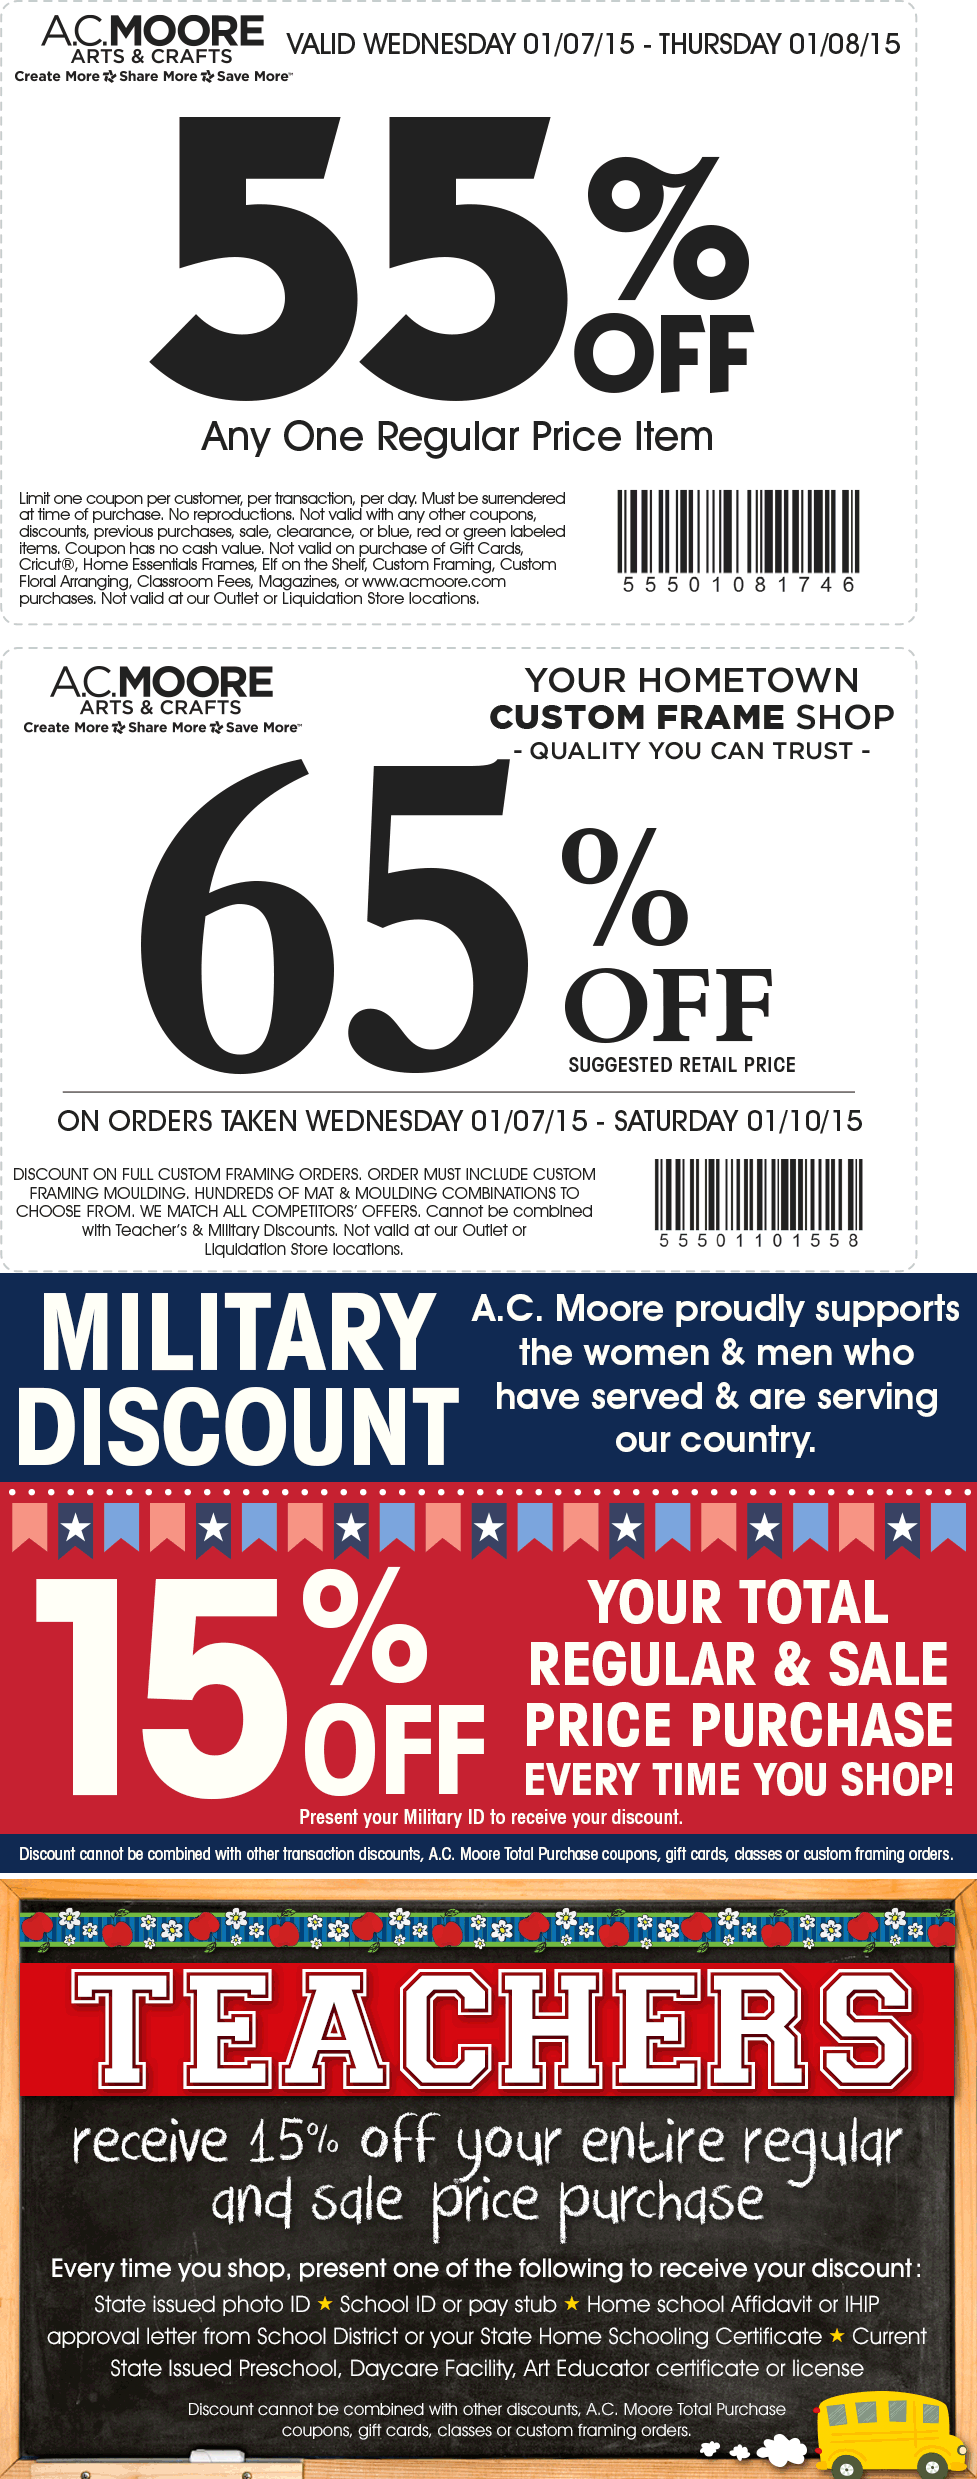 A.C.Moore.com Promo Coupon 55% off a single item & 15% off for teachers and military at A.C.Moore